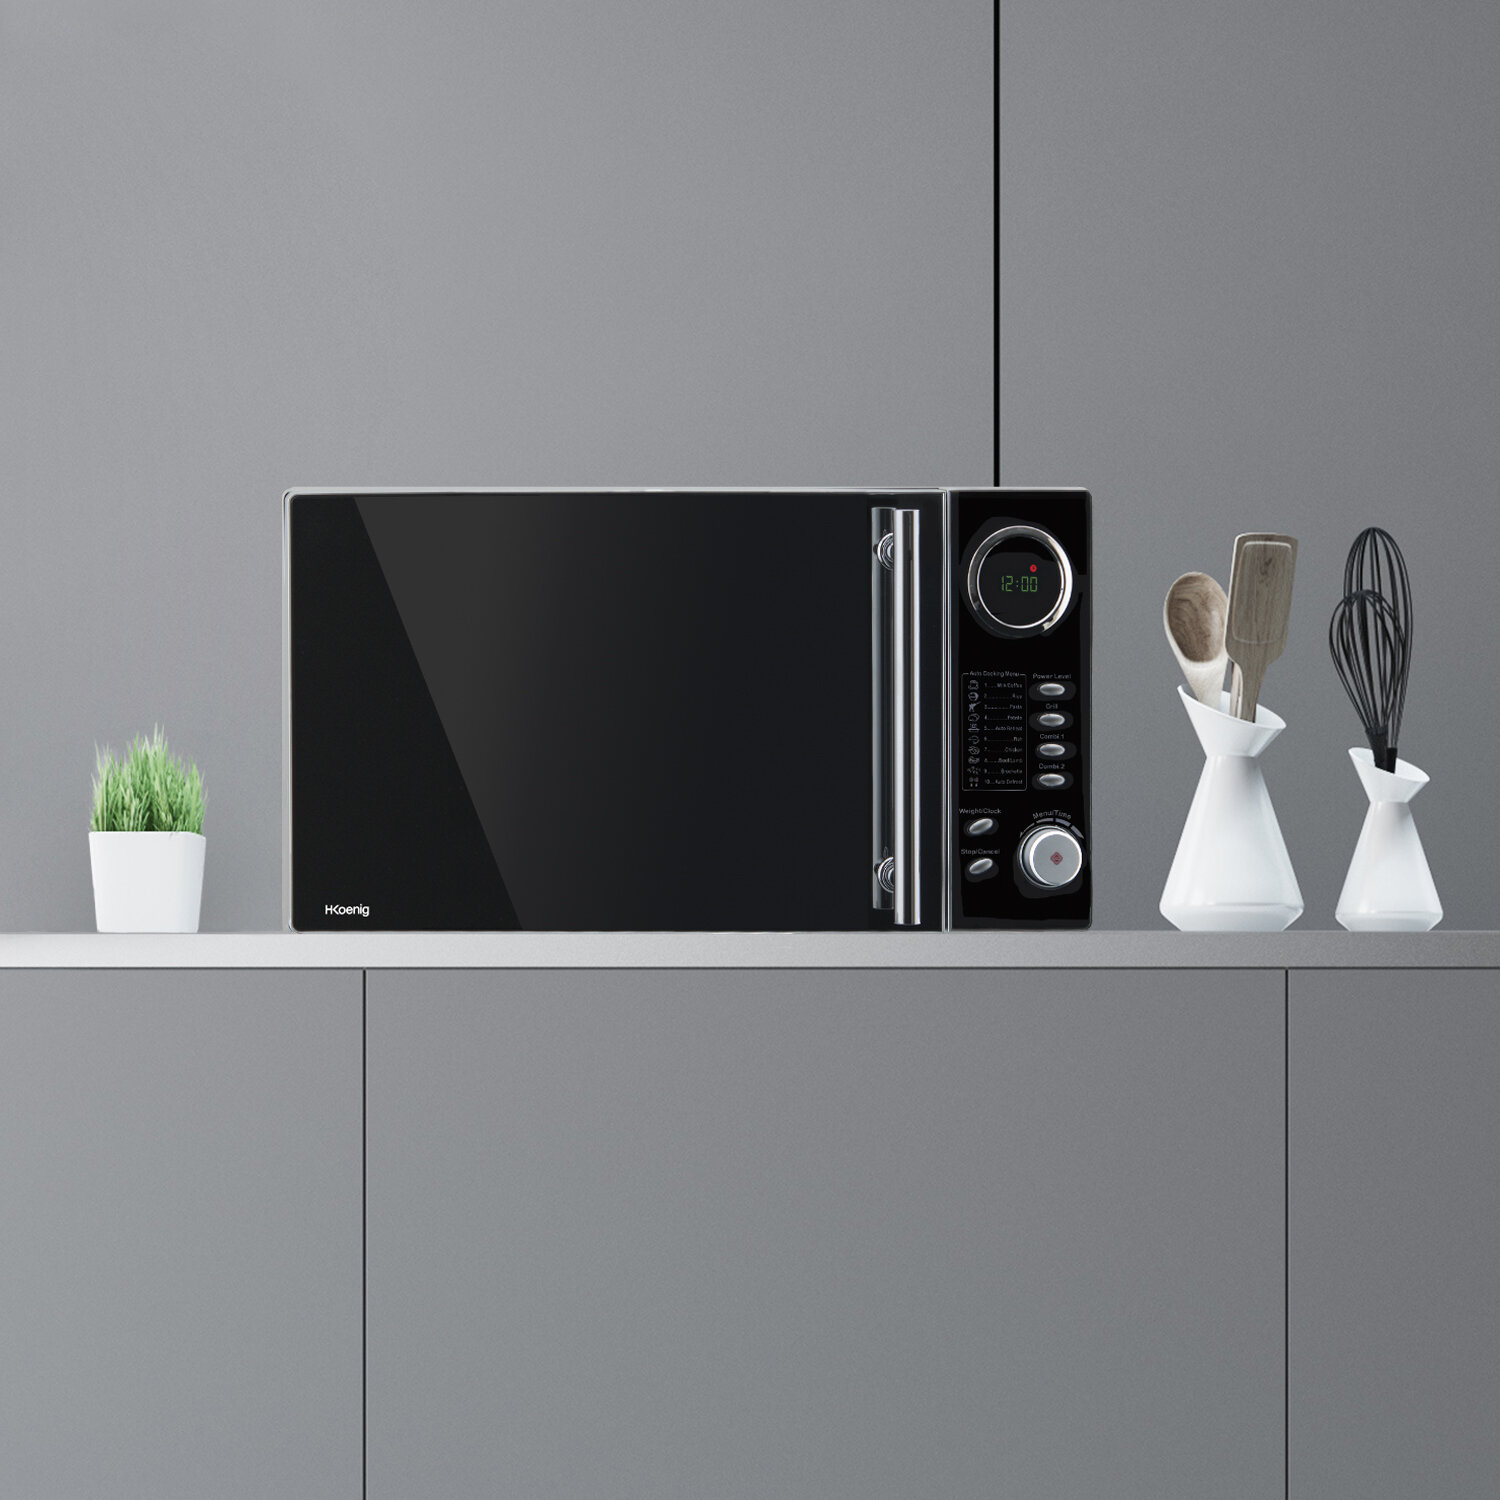 Cuisine Four Micro Onde four micro-ondes & grill